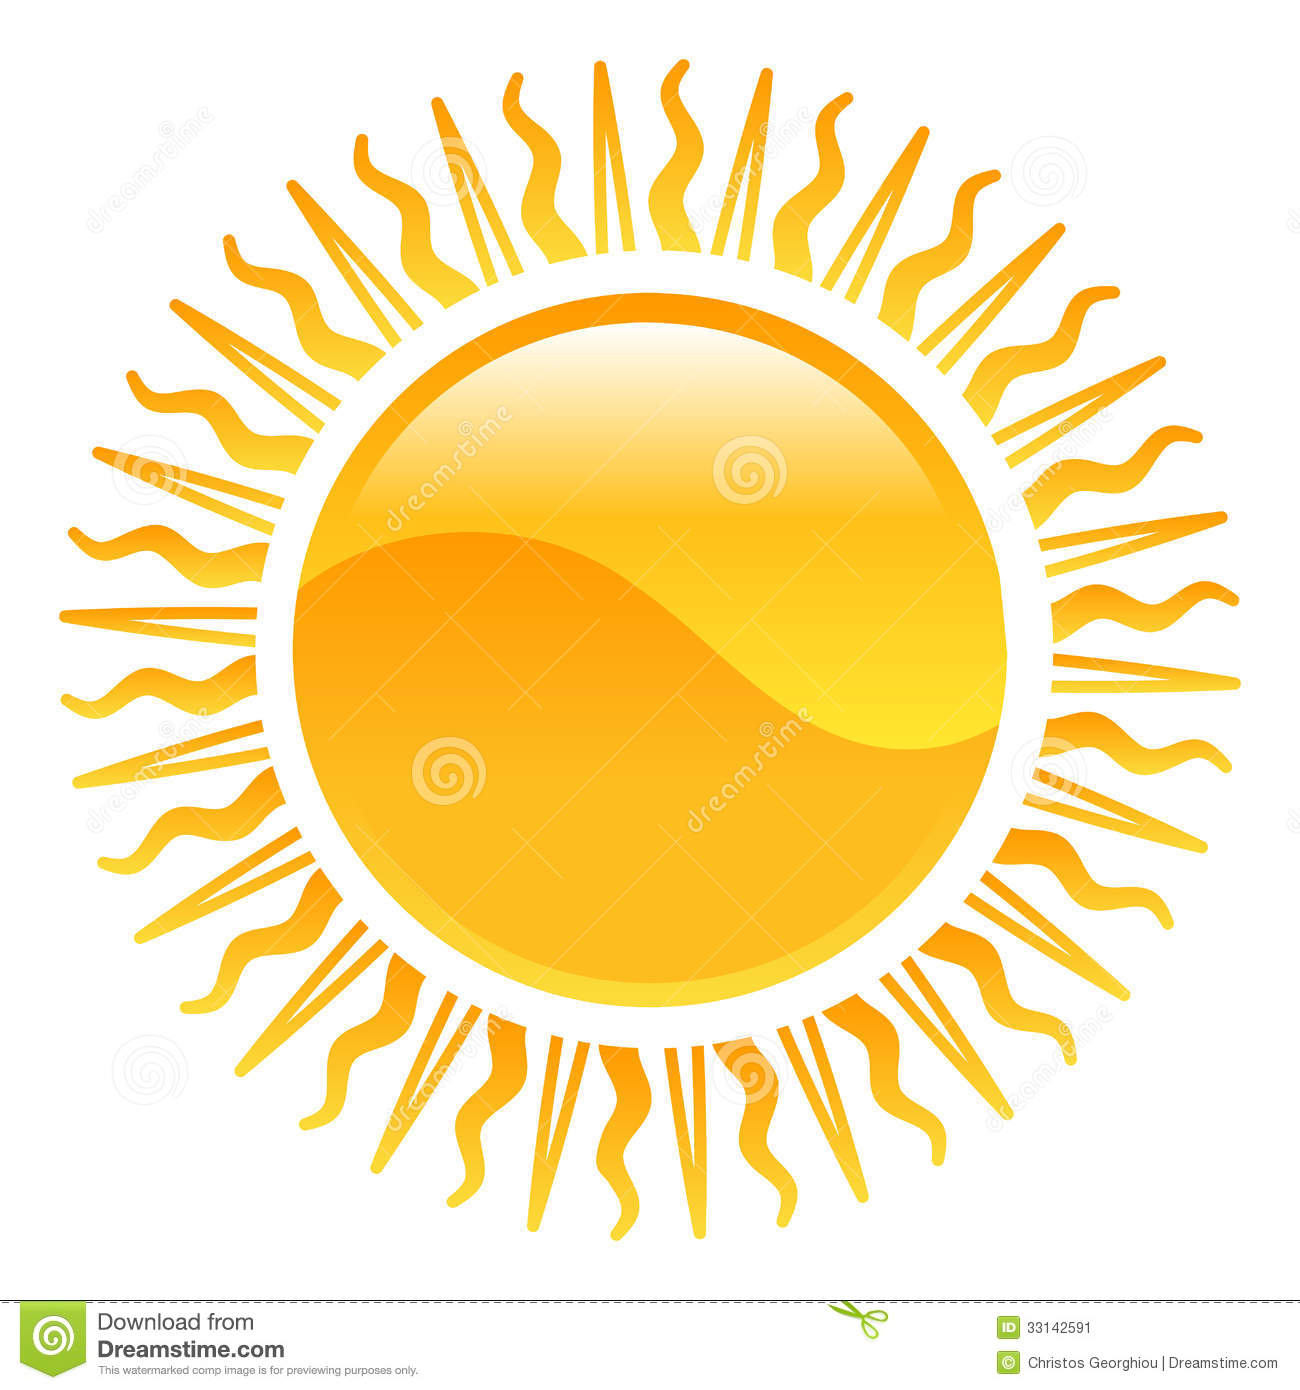 Weather icon clipart sun illustration